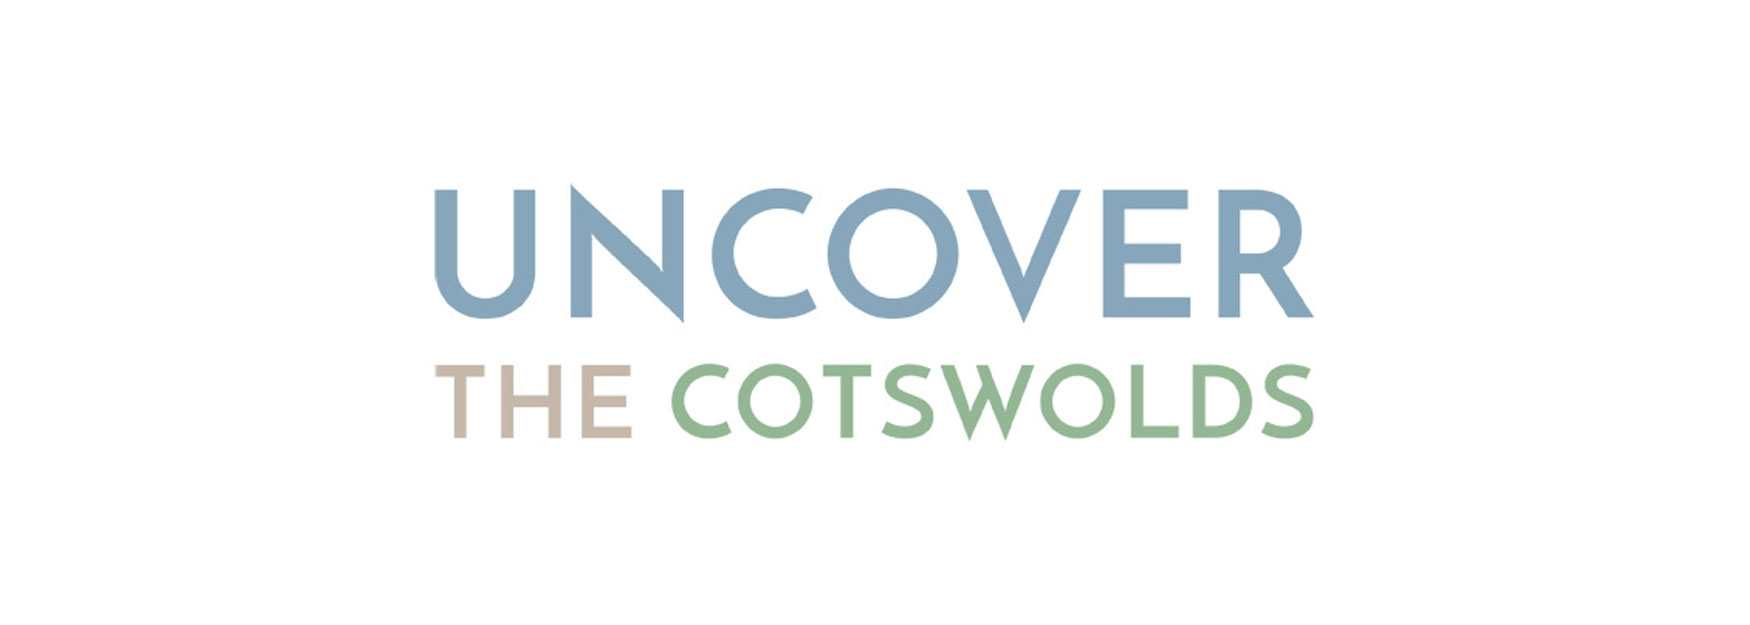 Uncover the Cotswolds - our Discover England Fund project to discover and promote new experiences to the travel trade